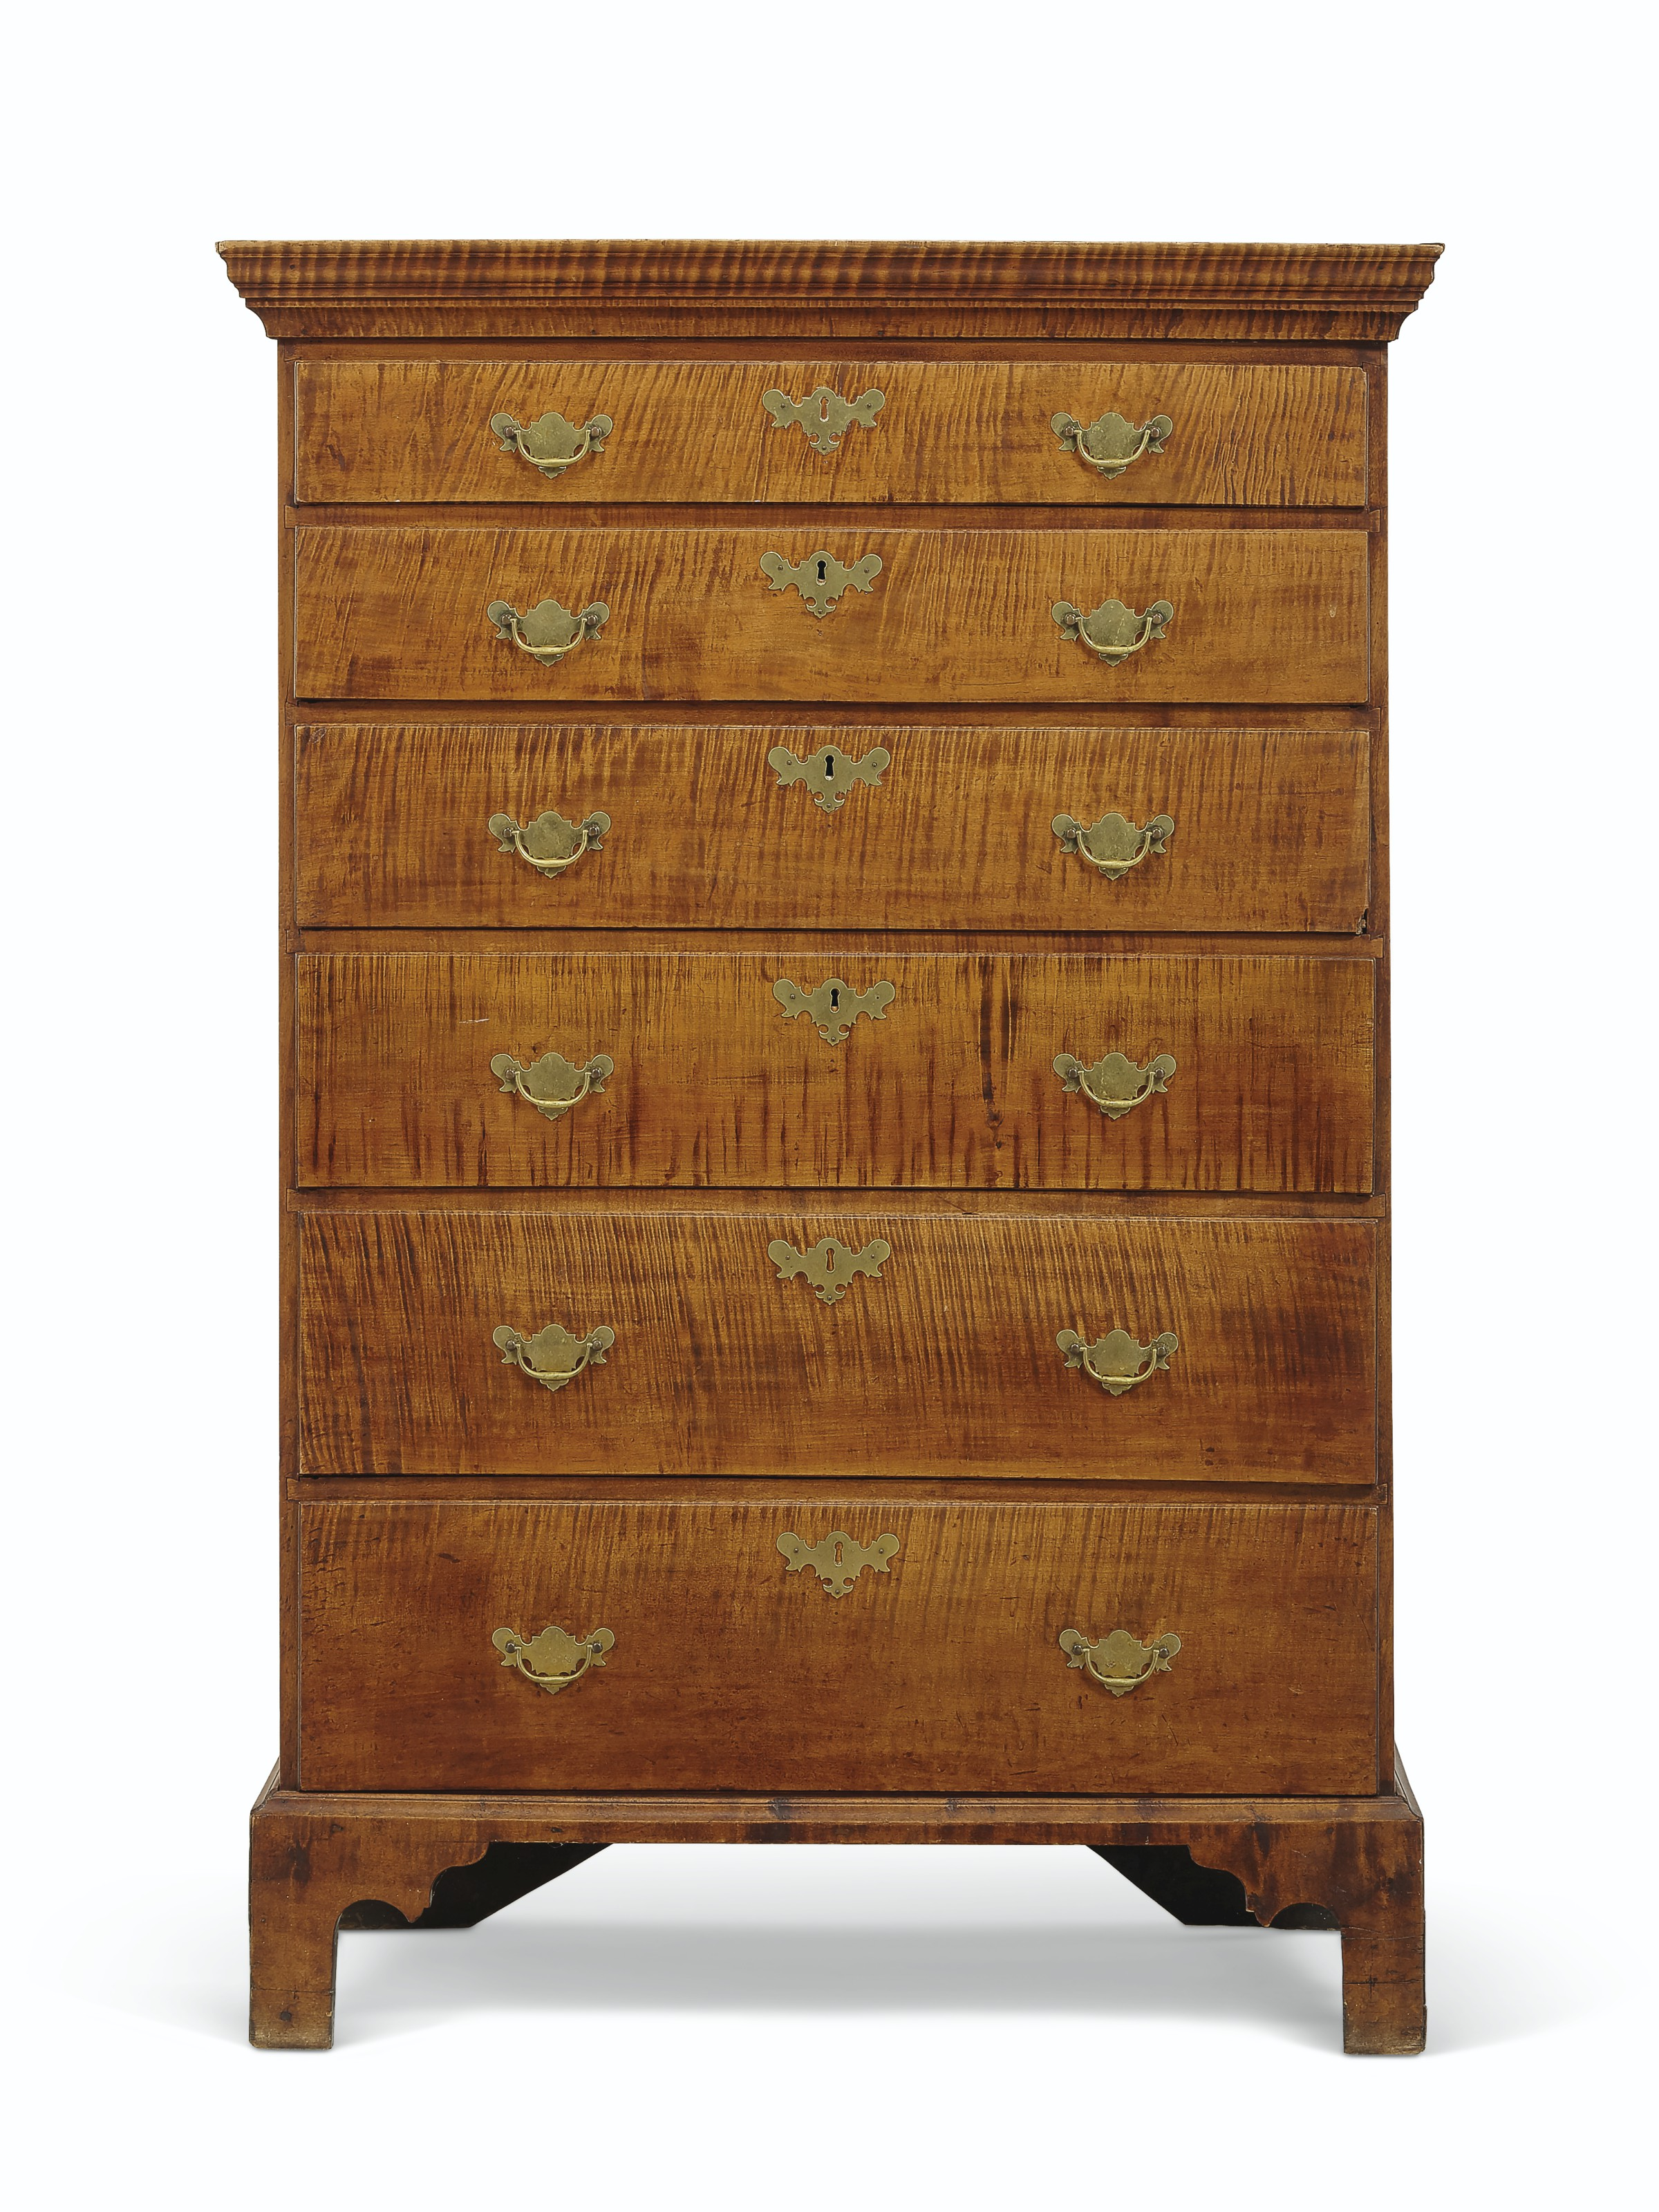 A CHIPPENDALE FIGURED MAPLE TALL CHEST-OF-DRAWERS